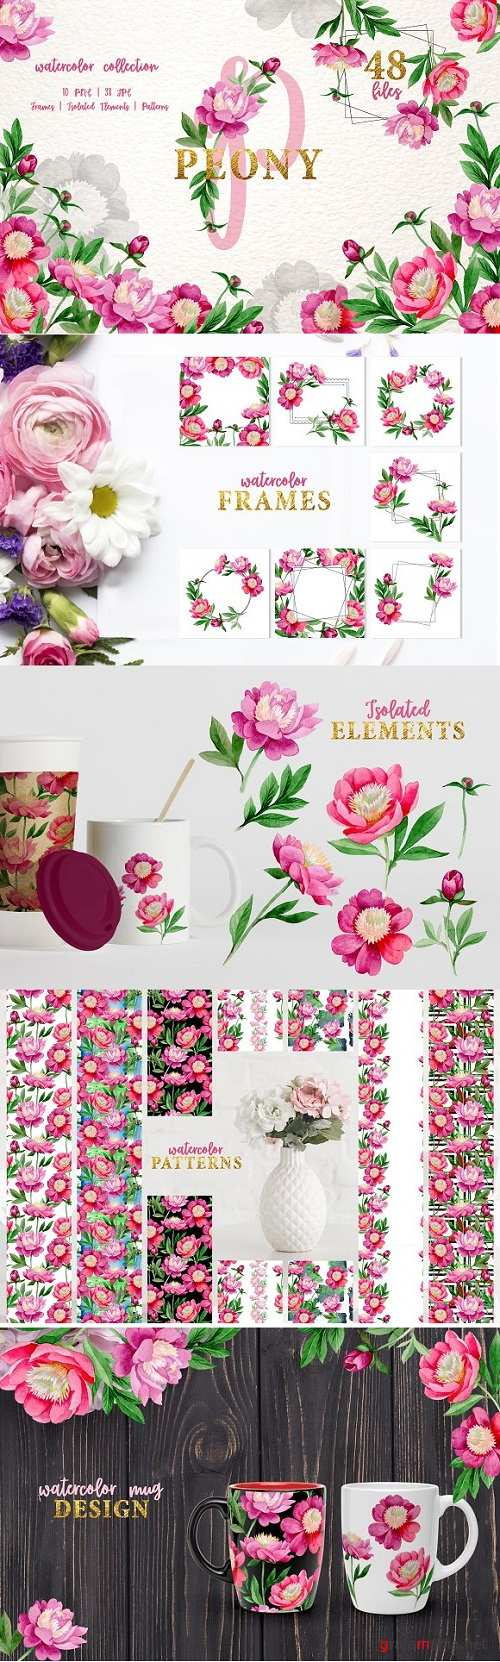 Pink Peony Tenderness Watercolor png - 3419321